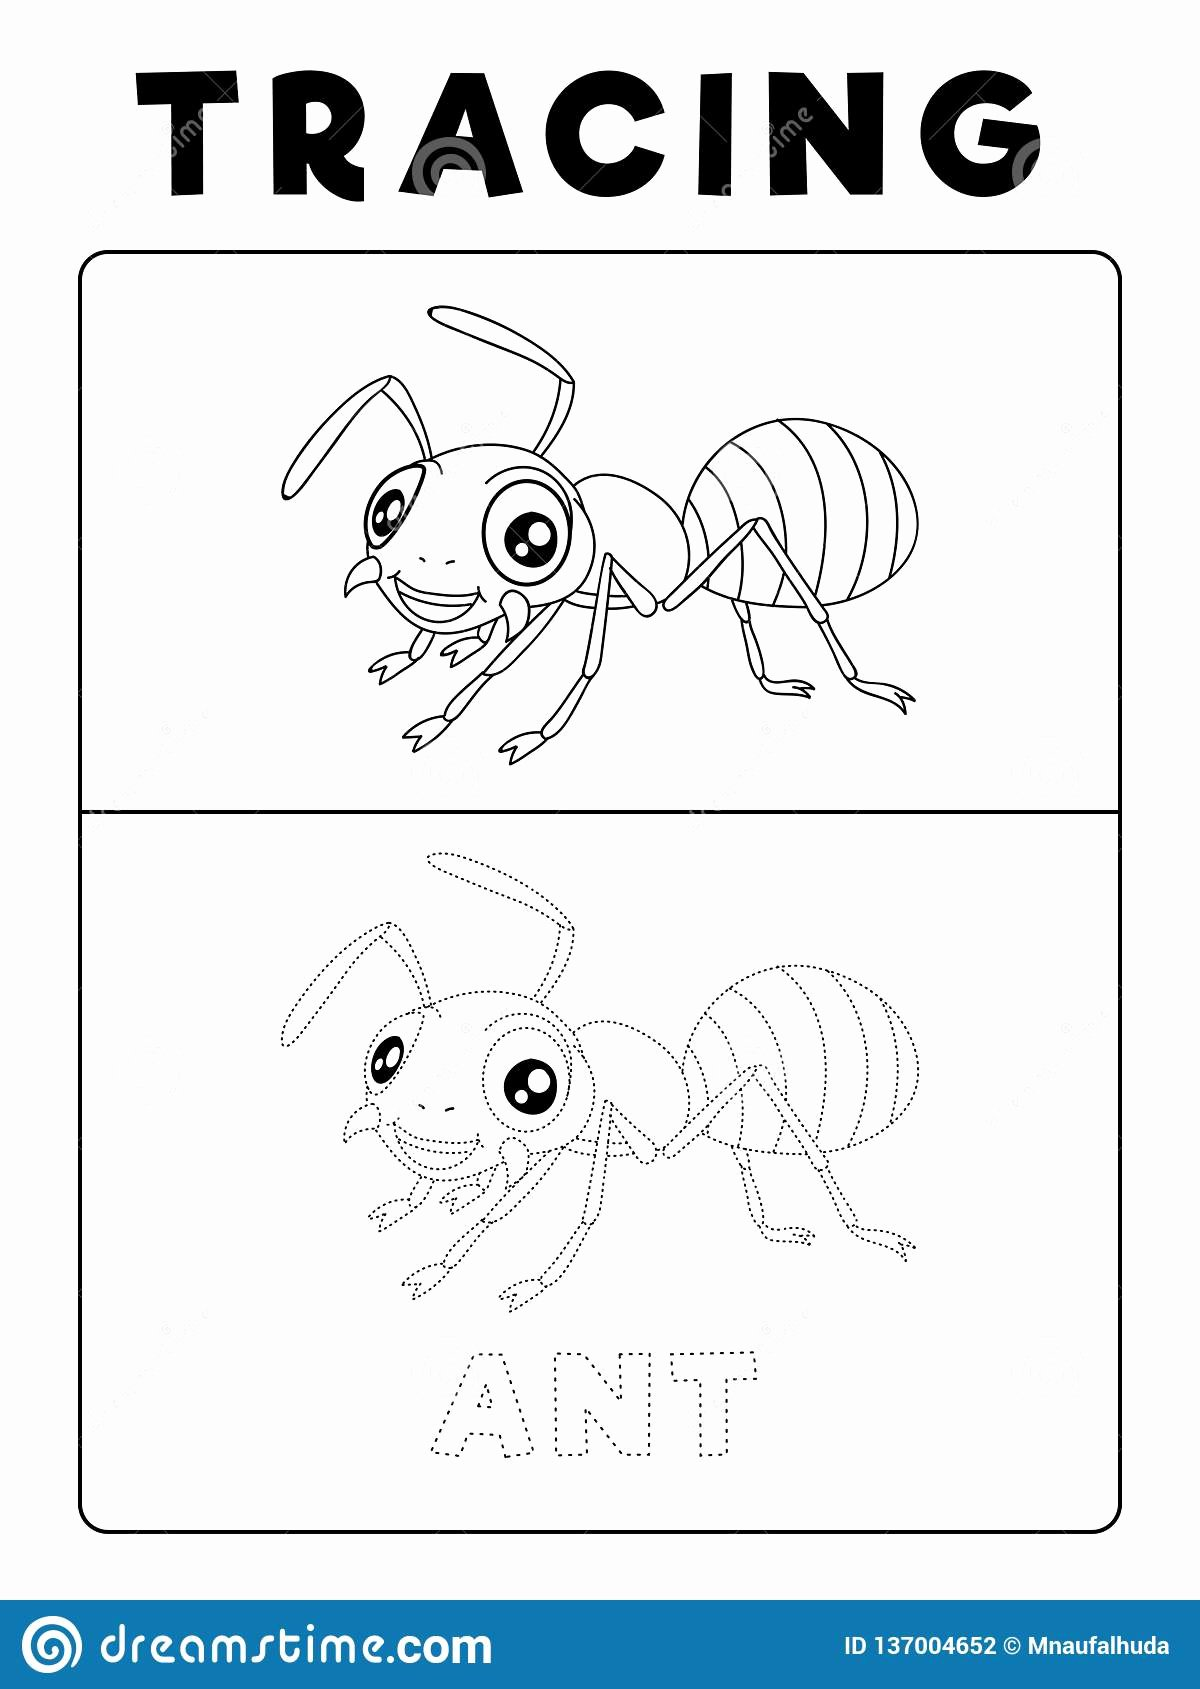 Insects Worksheets For Preschoolers